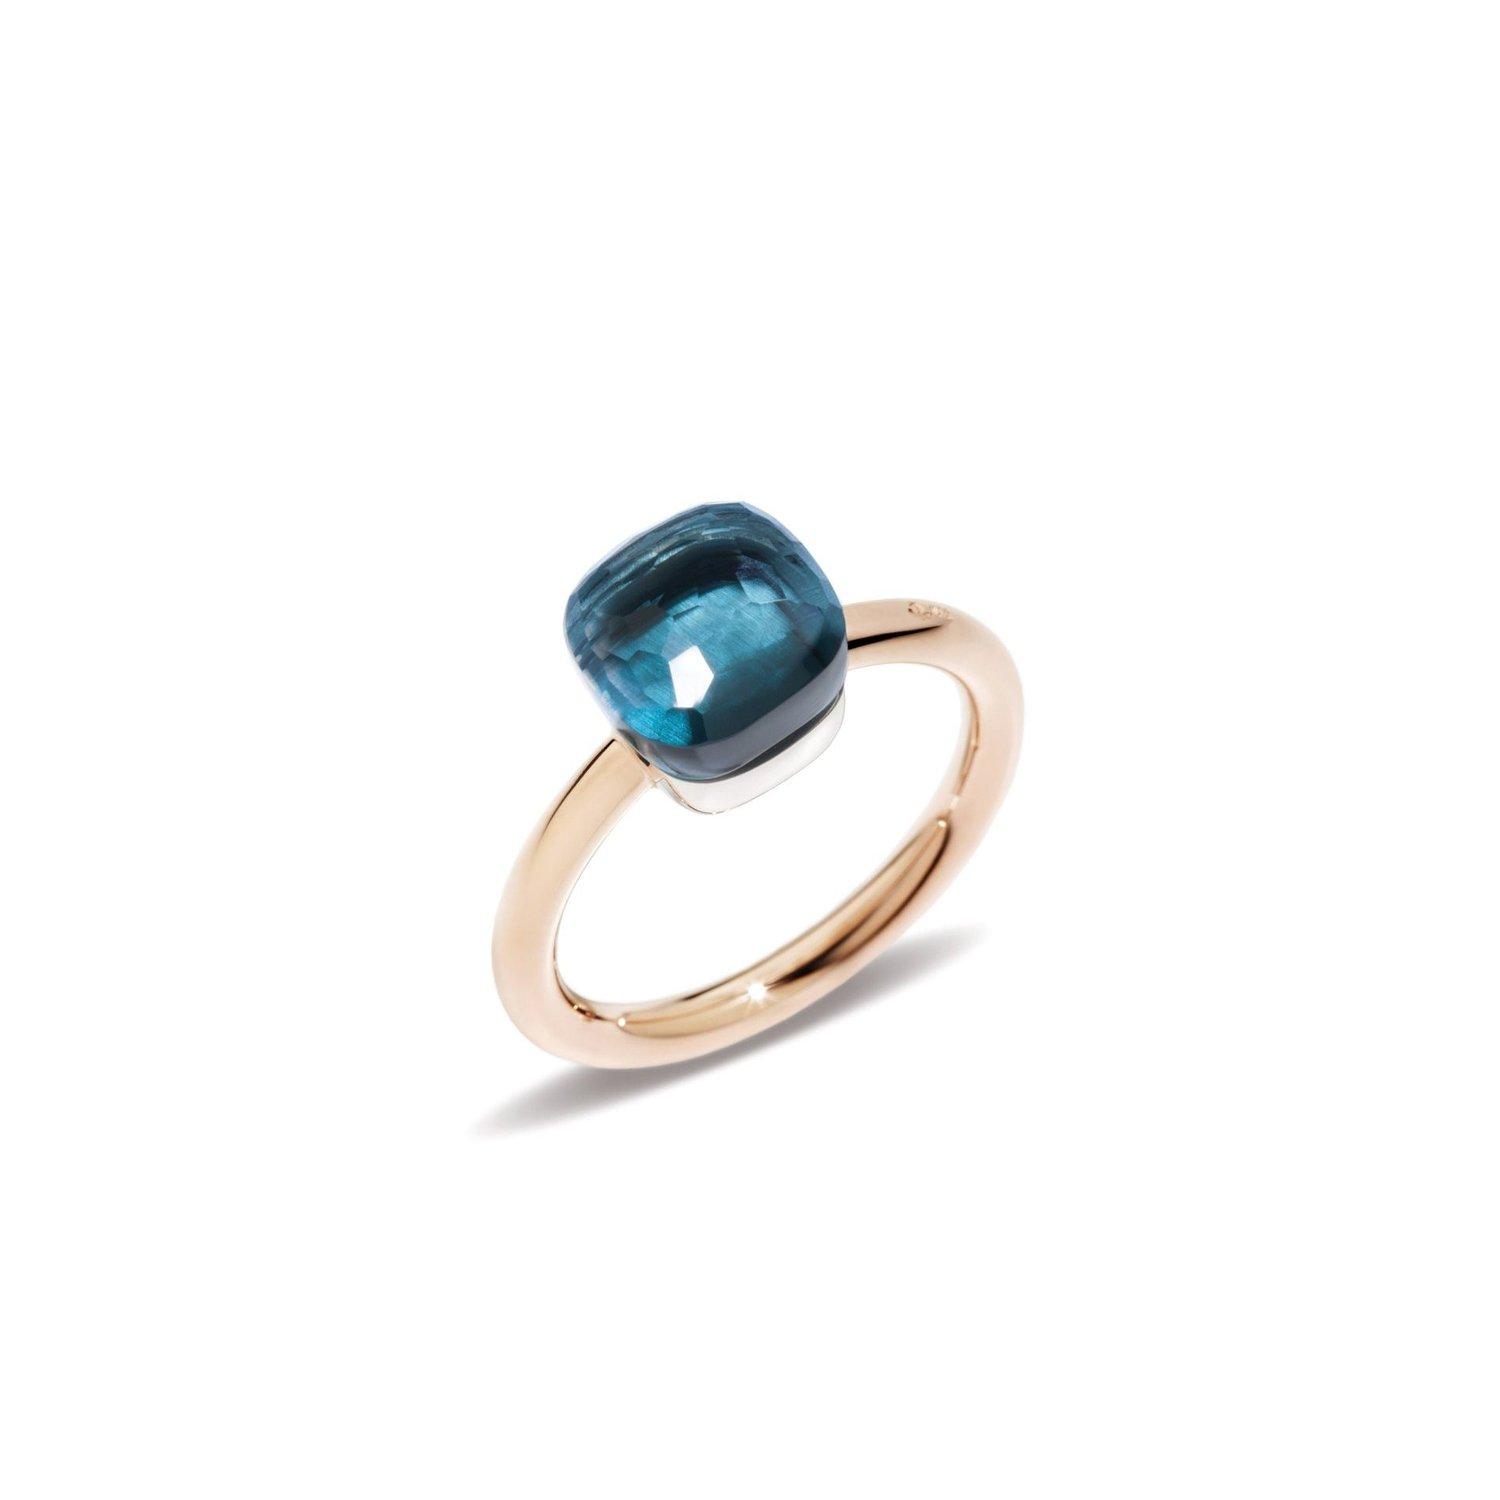 Bague Pomellato Nudo en or rose, or blanc, topaze bleue london et tsavorites